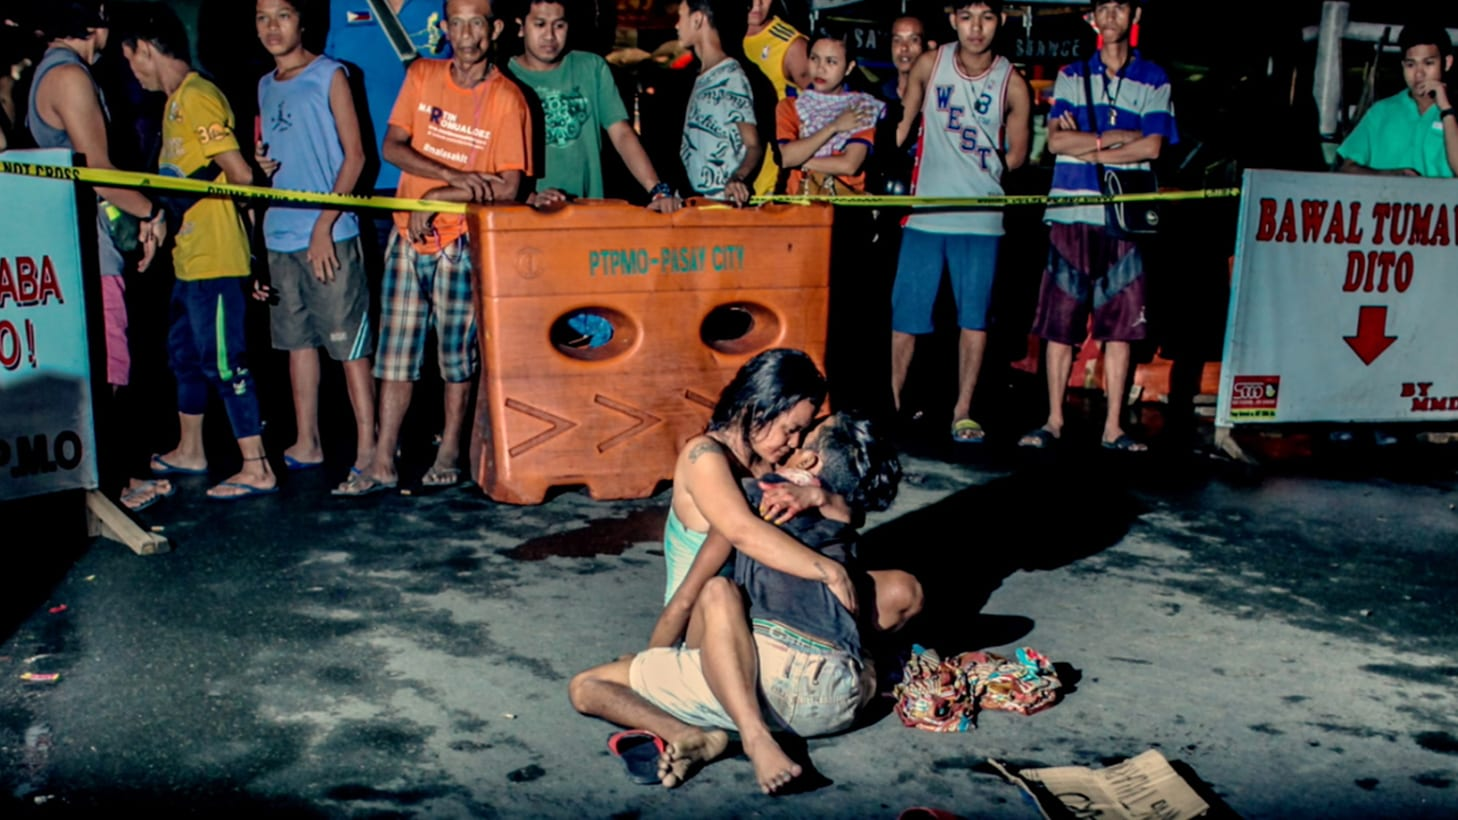 A woman cradles the lifeless body of her partner at a crime scene in Manila. (Photo by Basilio Sepe)